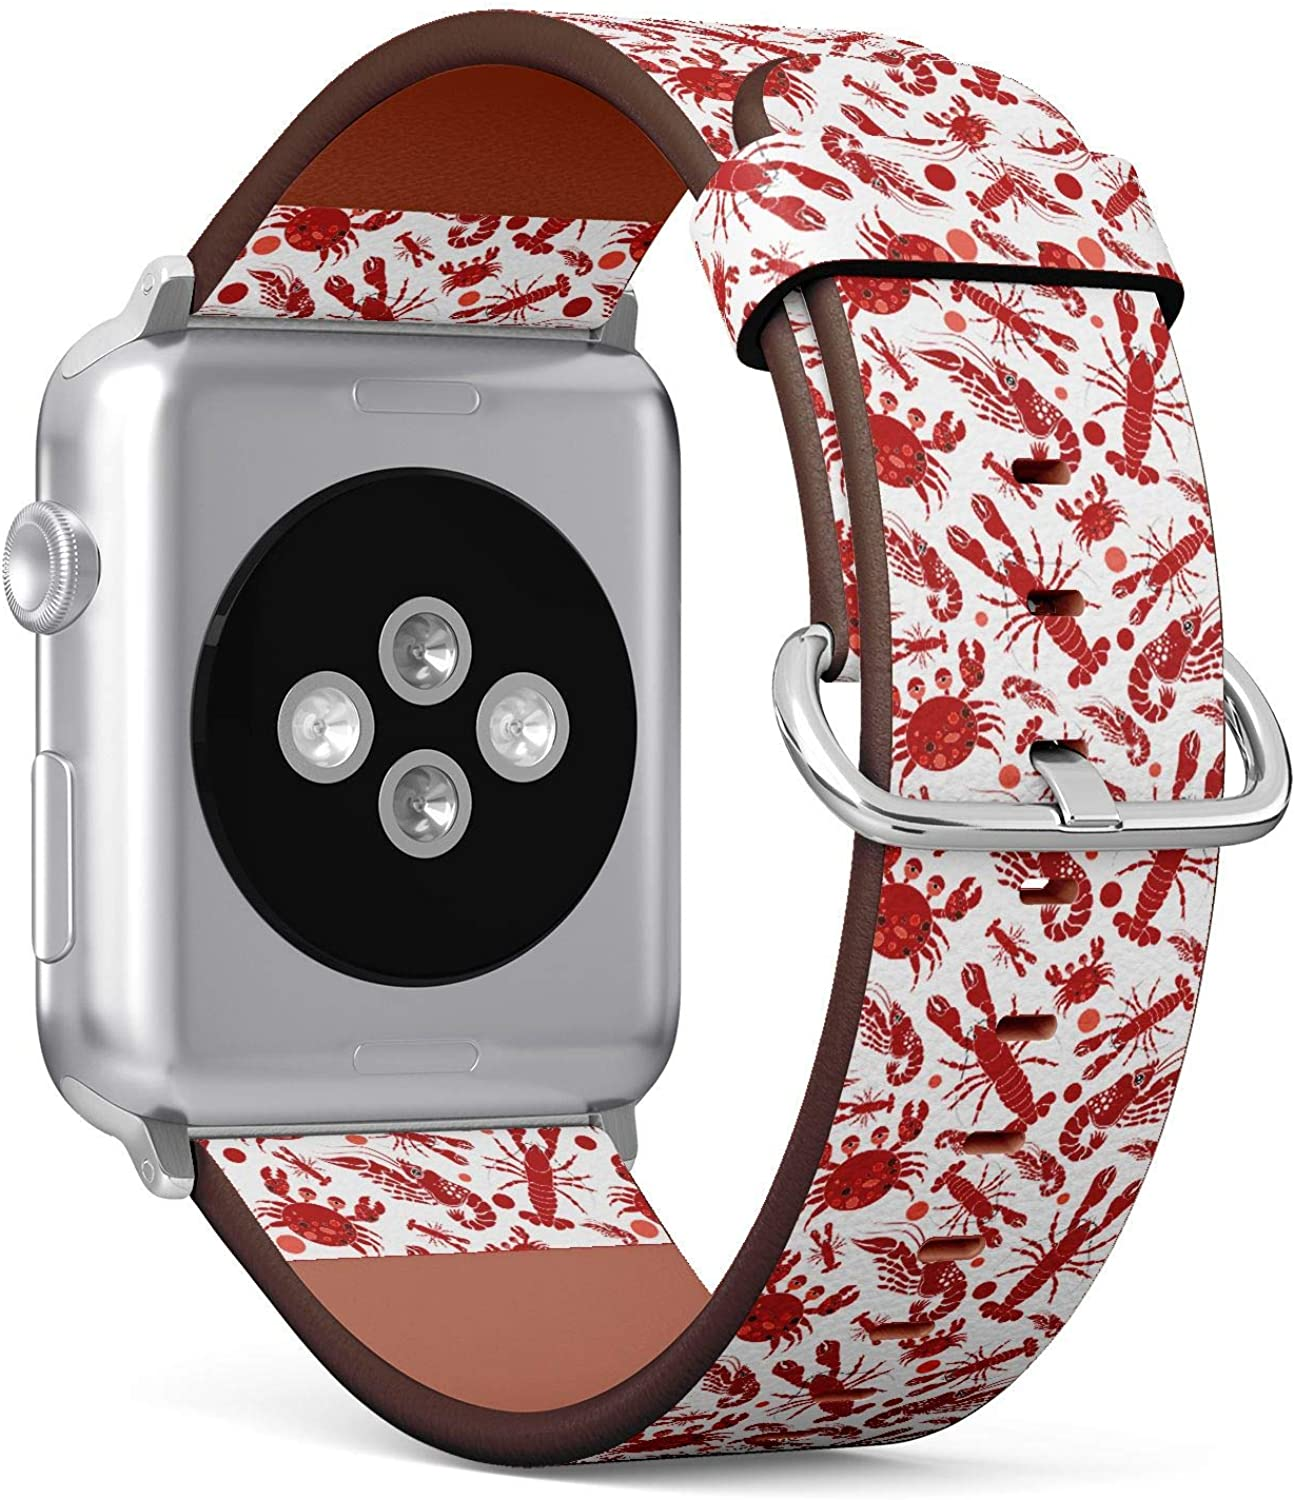 (Summer Pattern with red Crabs,Lobsters and Shrimps) Patterned Leather Wristband Strap for Apple Watch Series 4/3/2/1 gen,Replacement for iWatch 42mm / 44mm Bands